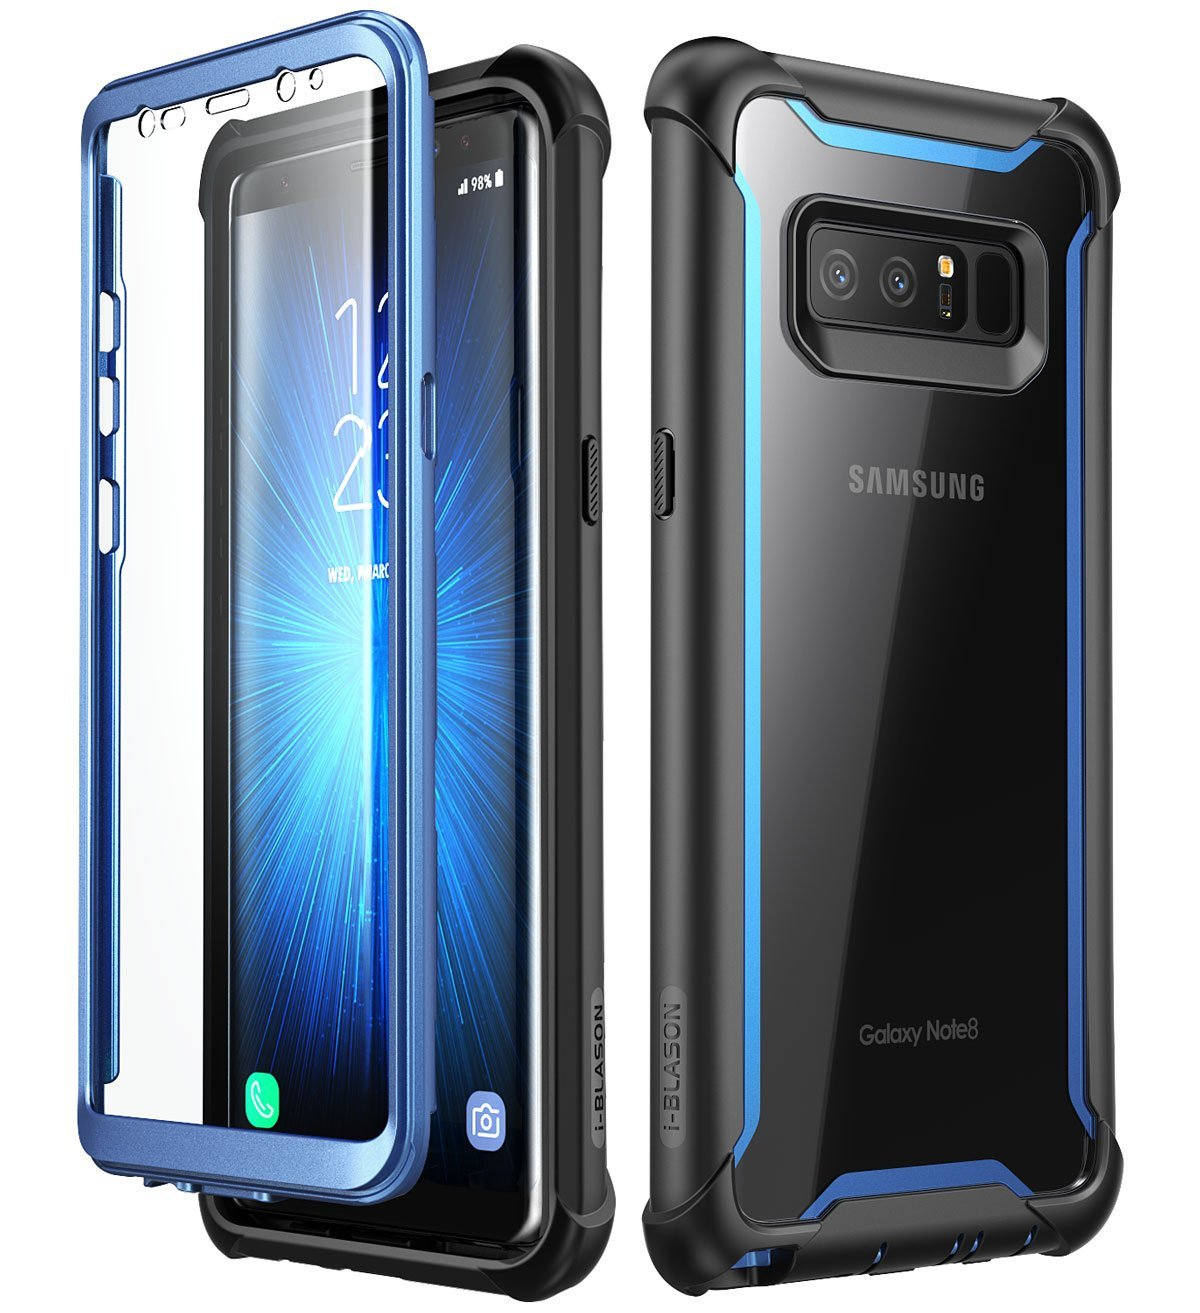 new product d791d a9f67 Samsung Galaxy Note 8 case,i-Blason [Ares Series] Full-body Rugged Clear  Bumper Case with Built-in Screen Protector for Samsung Galaxy Note 8 2017  ...